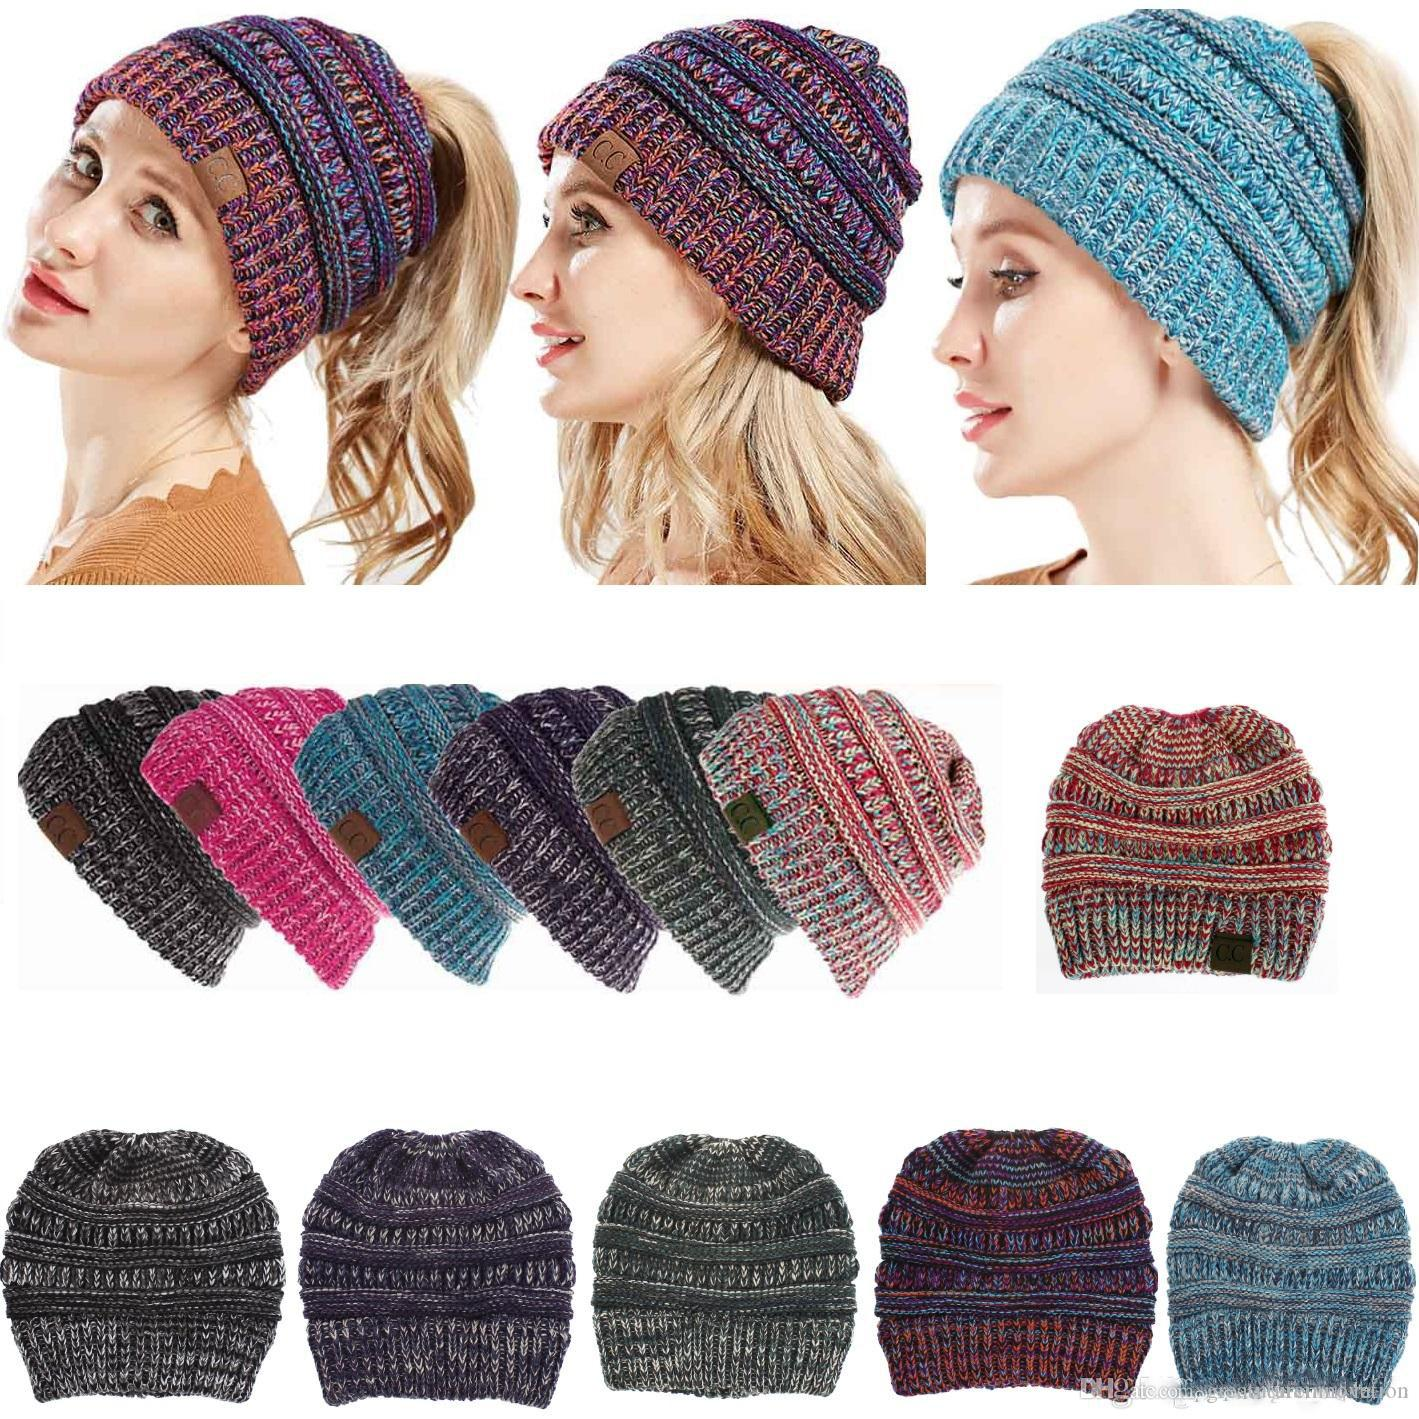 Winter Knitted CC Hats CC Knitted Beanies Fashion Winter Ponytail Hat Back Hole  Caps Casual Outdoor Hats Online with  4.7 Piece on Greatutureinnovation s  ... f45c3cba7e9